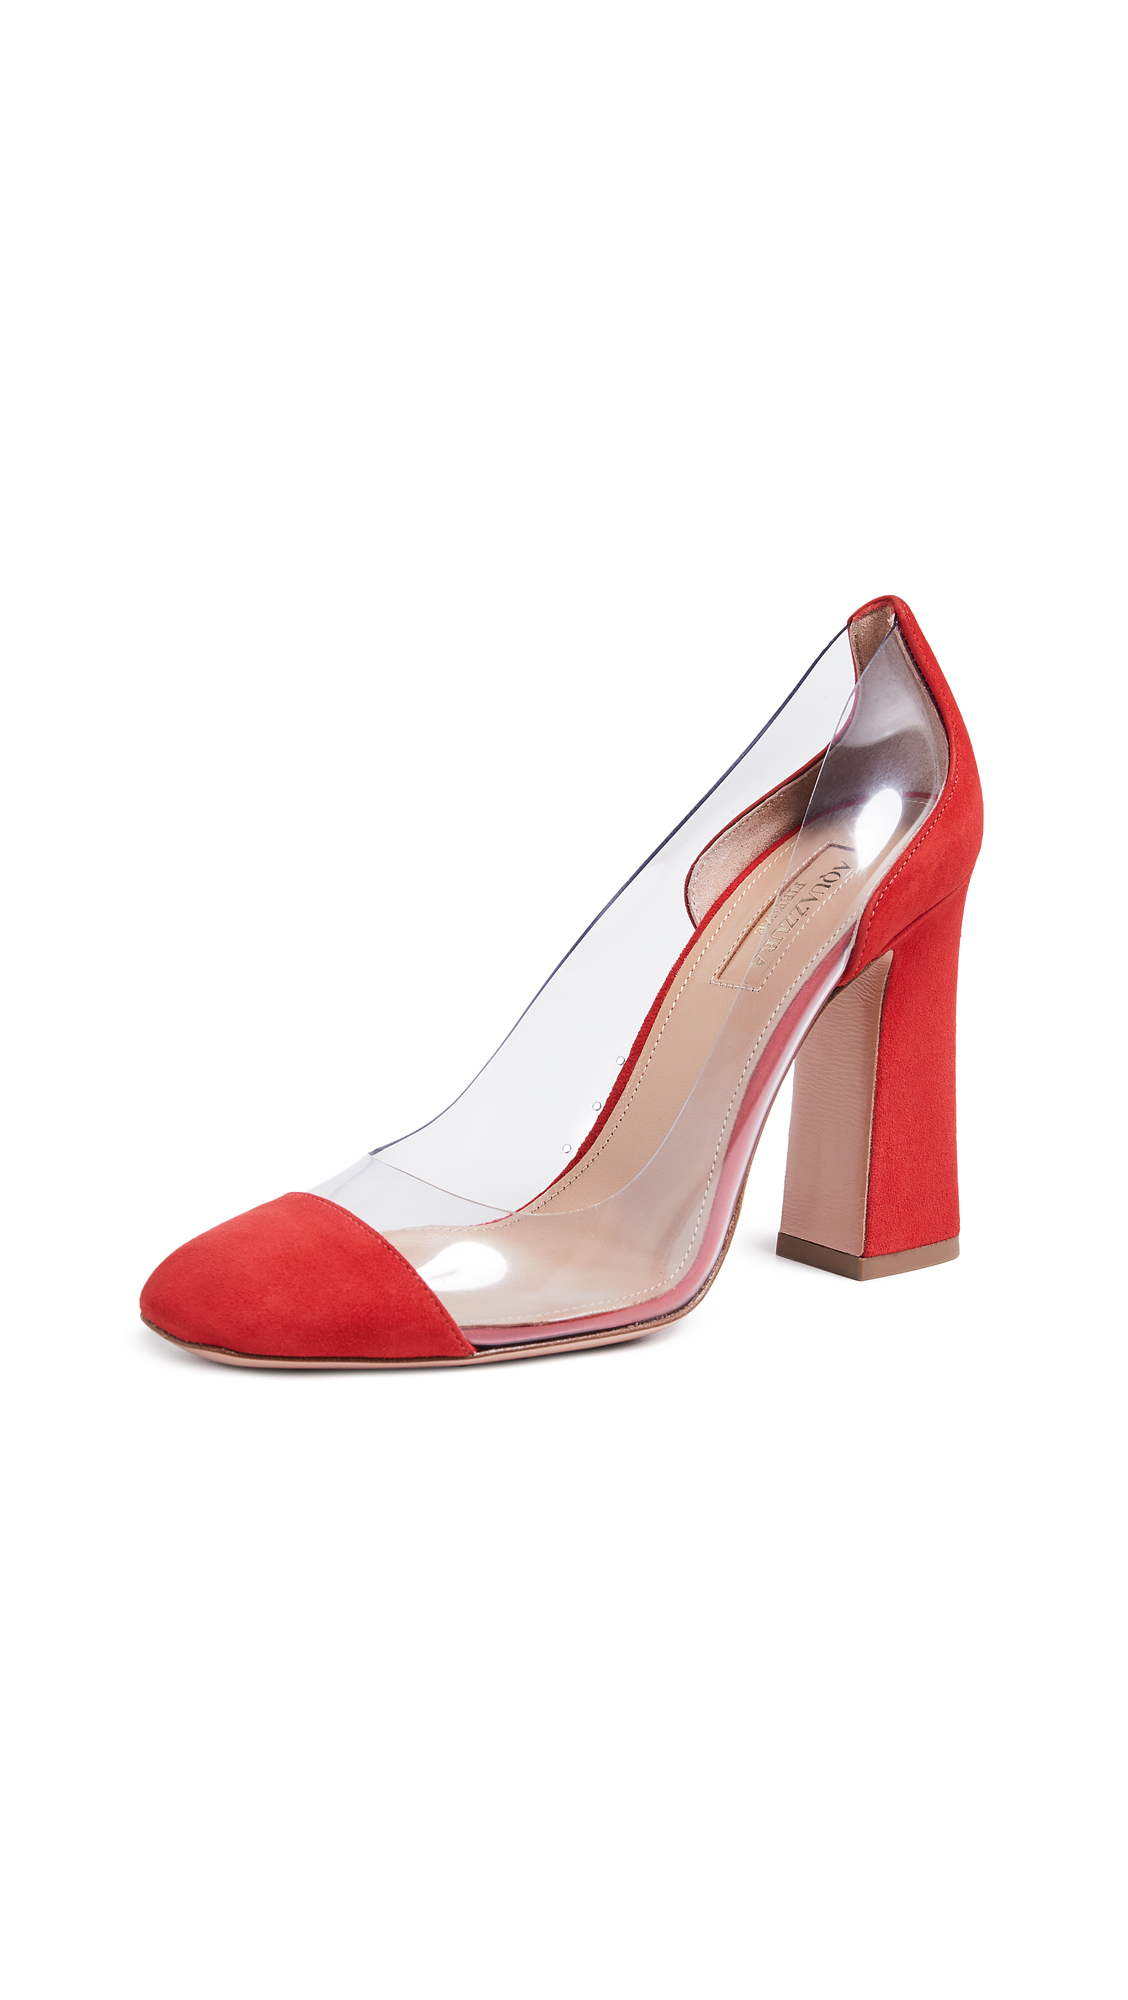 Aquazzura Optic 105 Pumps - Carnation Red